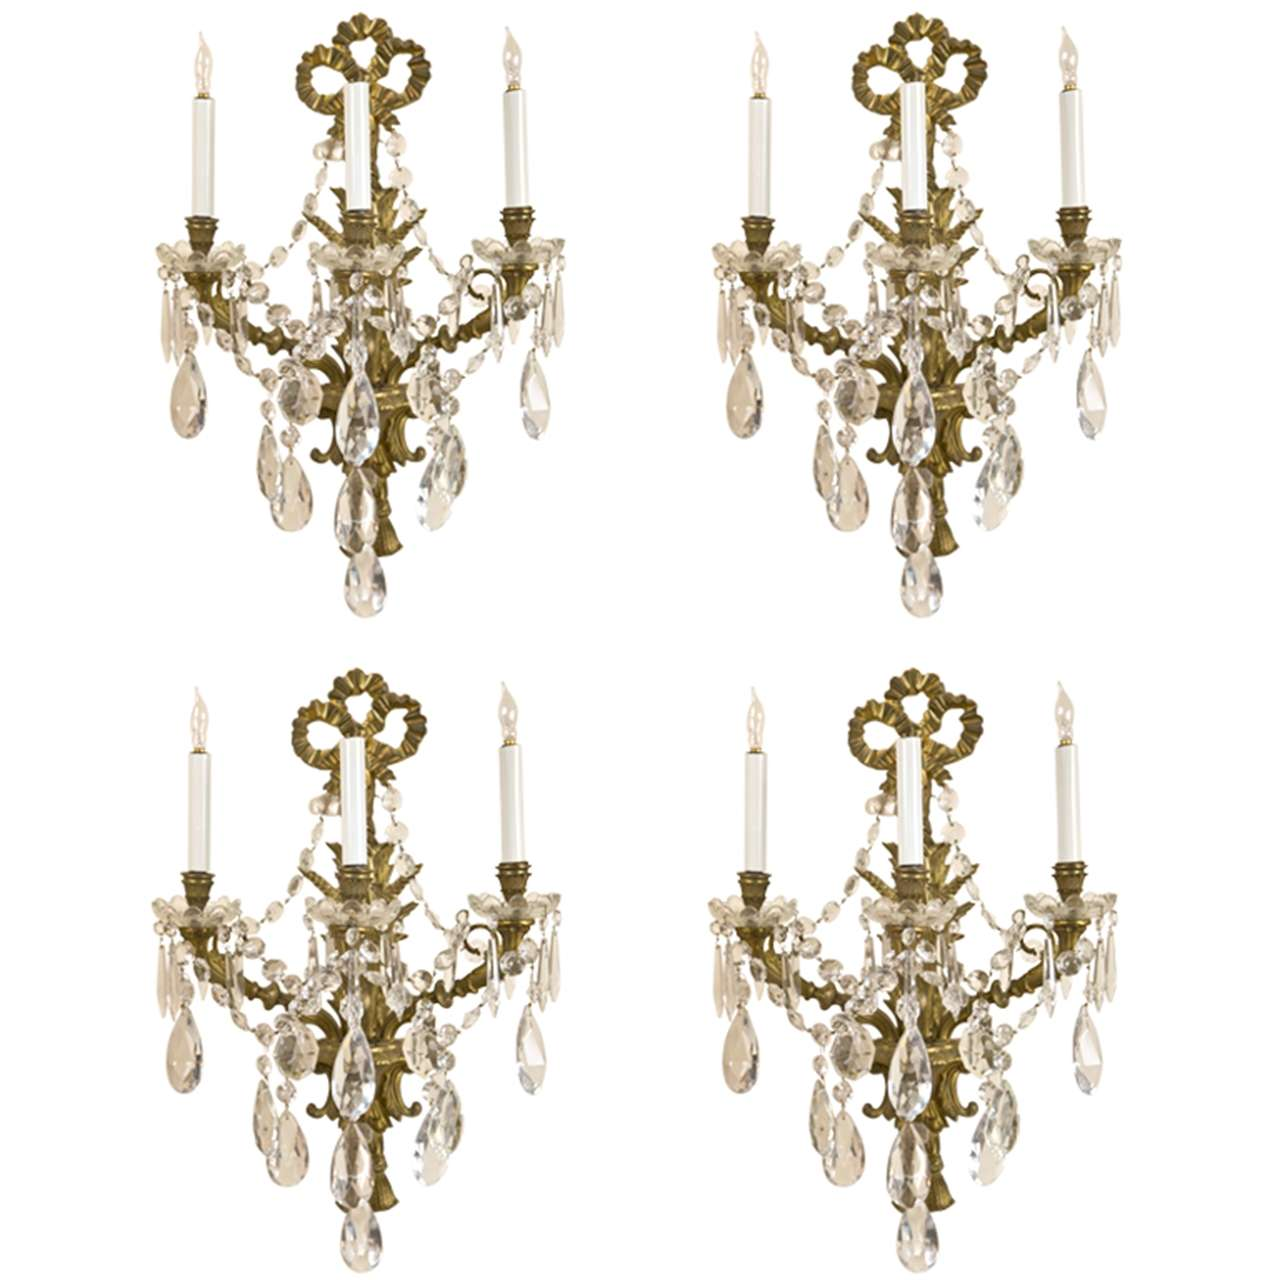 Wall Sconces With Crystal : Crystal Wall Sconces - Home Designs